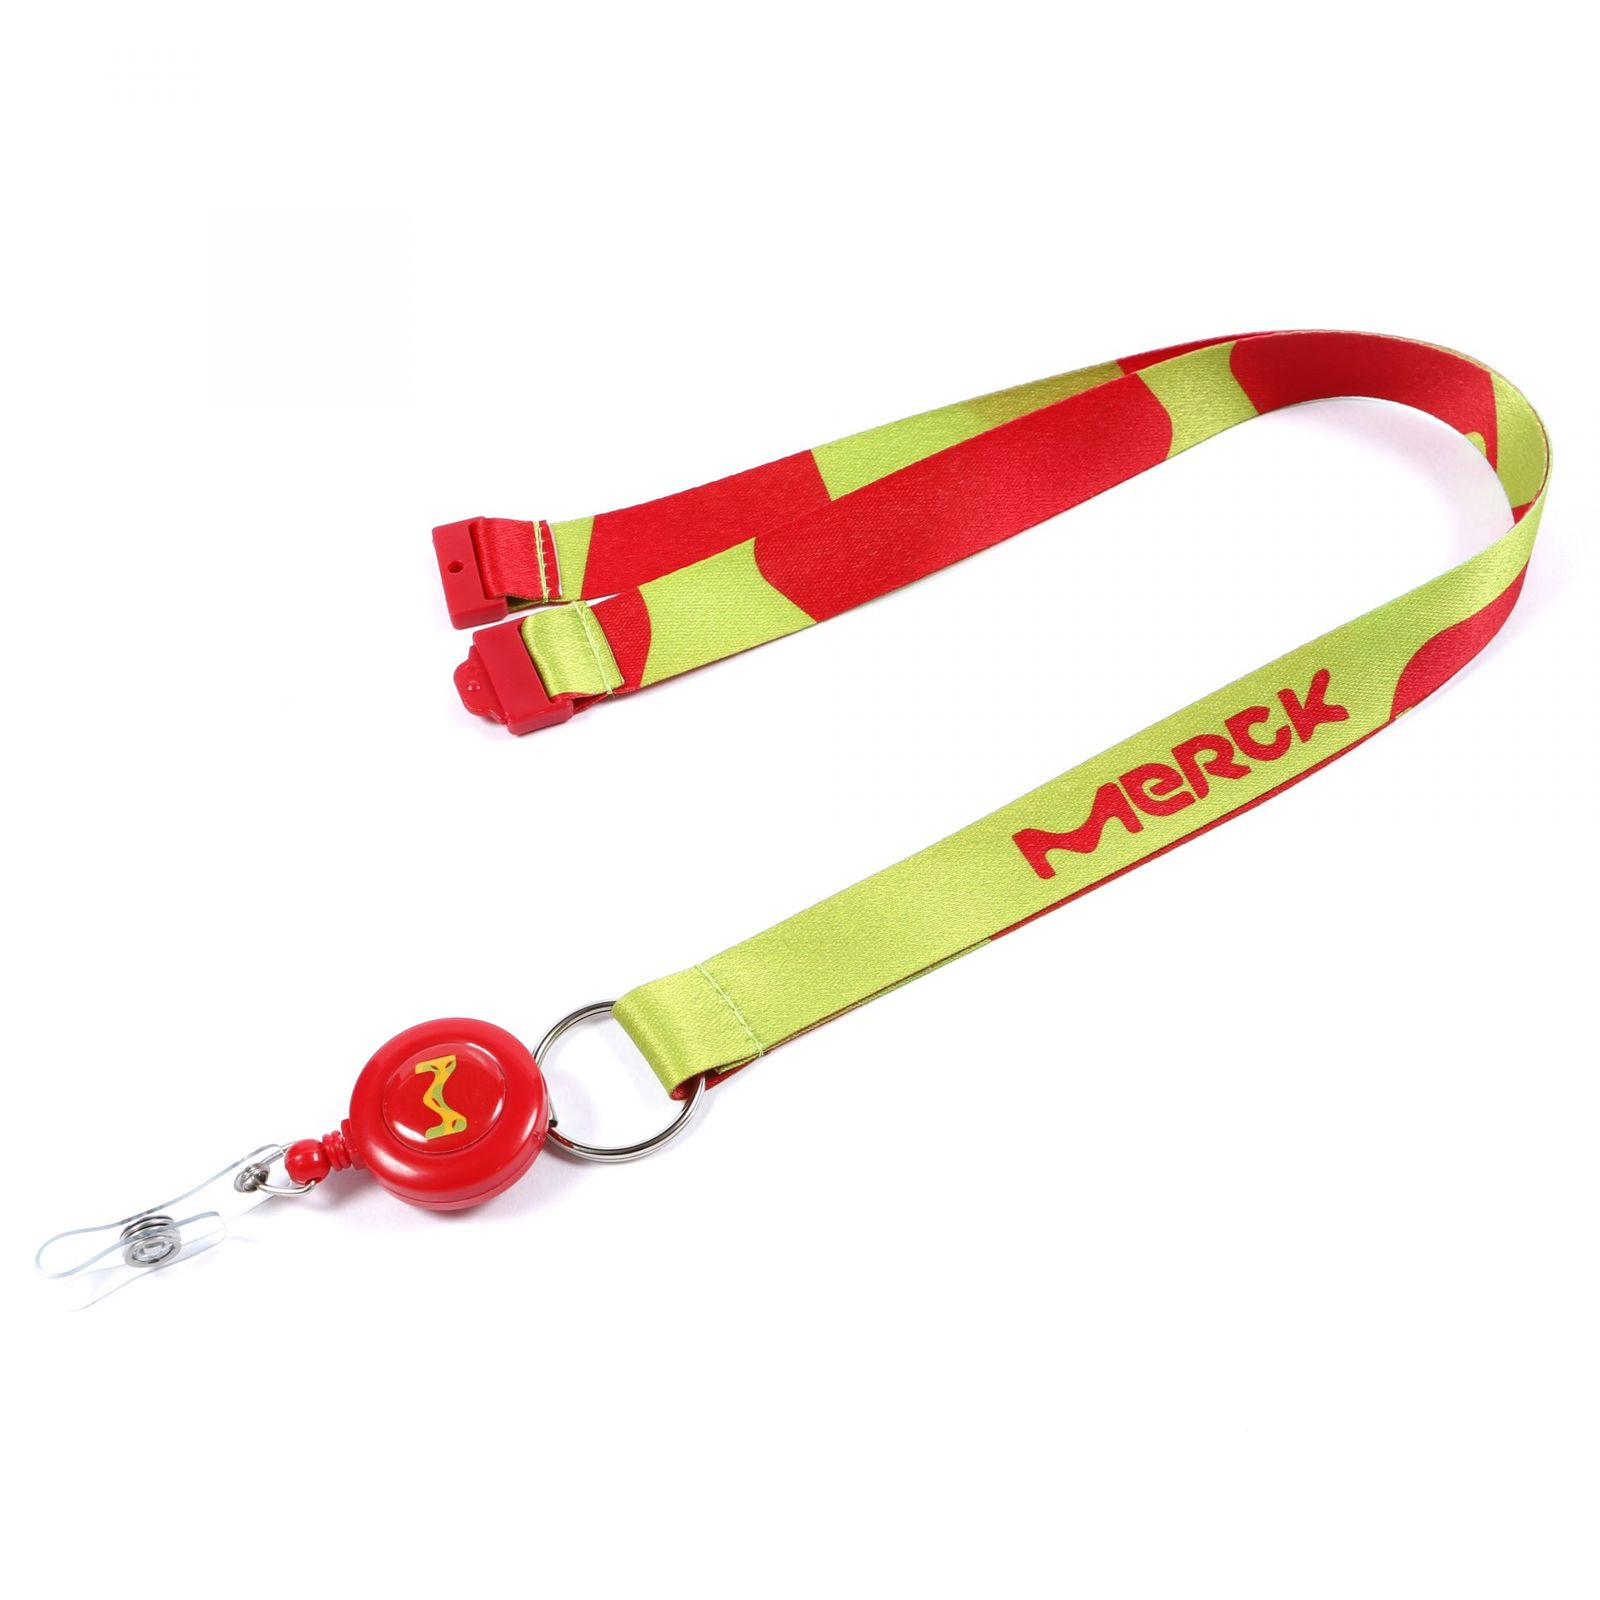 Buy Deluxe Full Colour Printed Lanyards (Express) on Lanyards Direct Today!